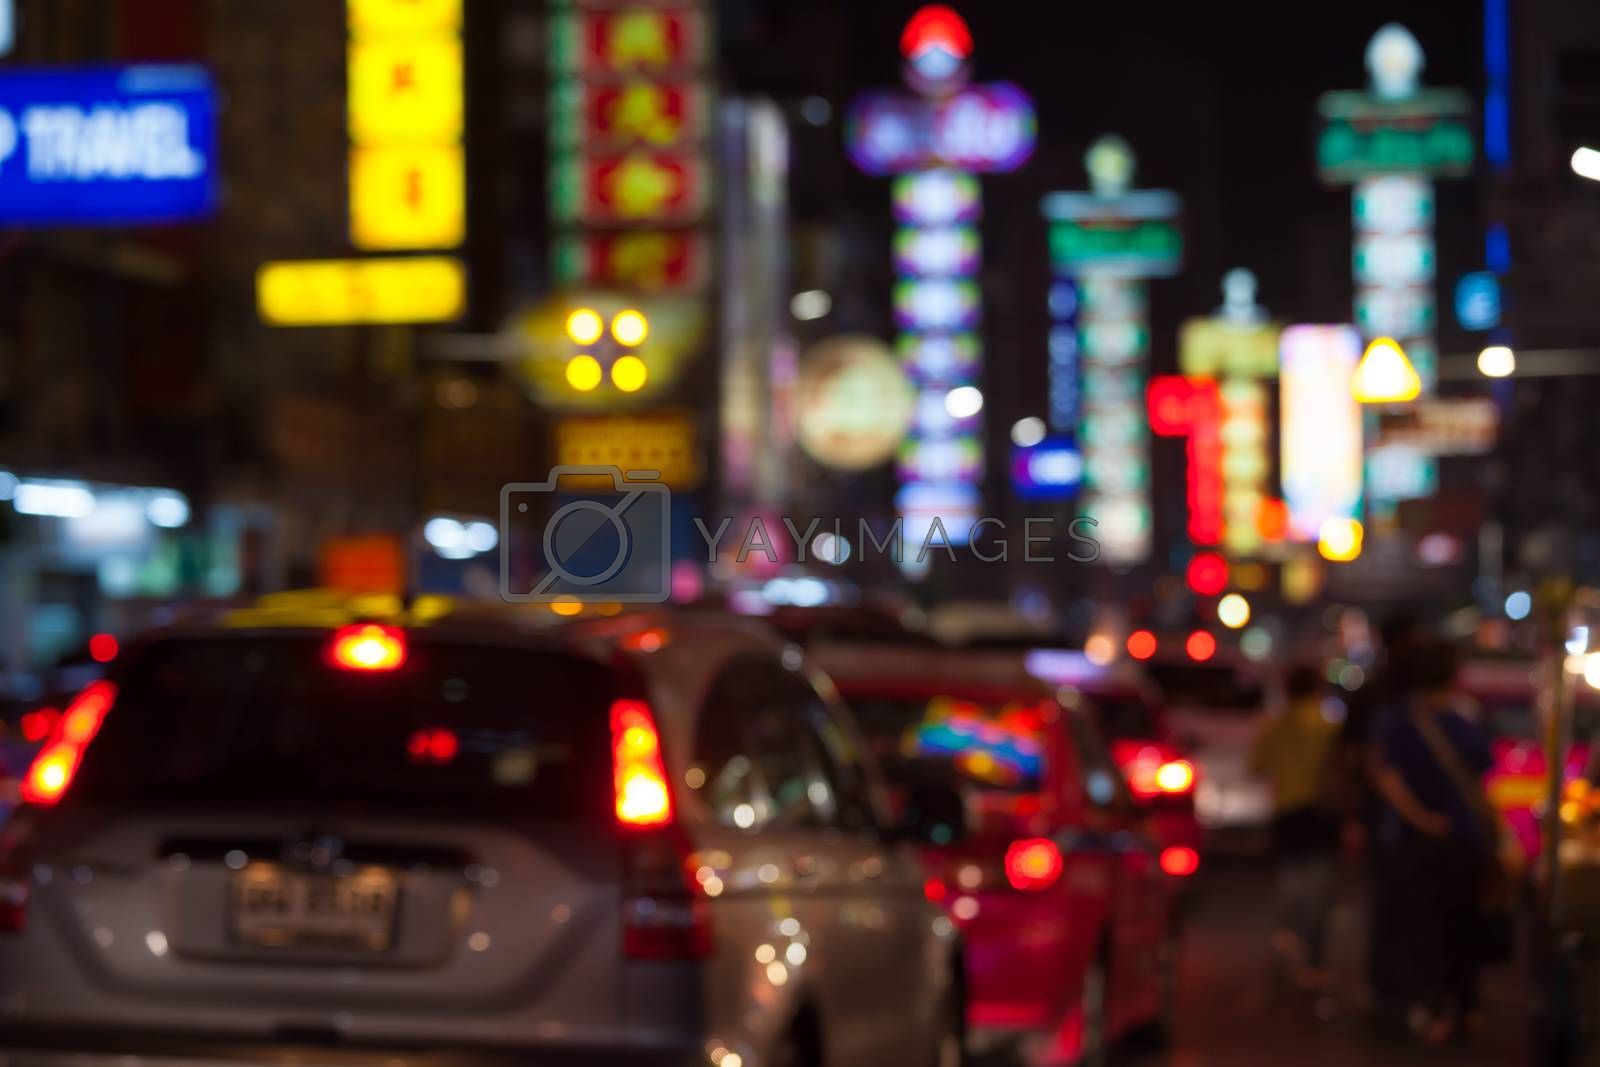 Blurred unfocused city view at night in Thailand